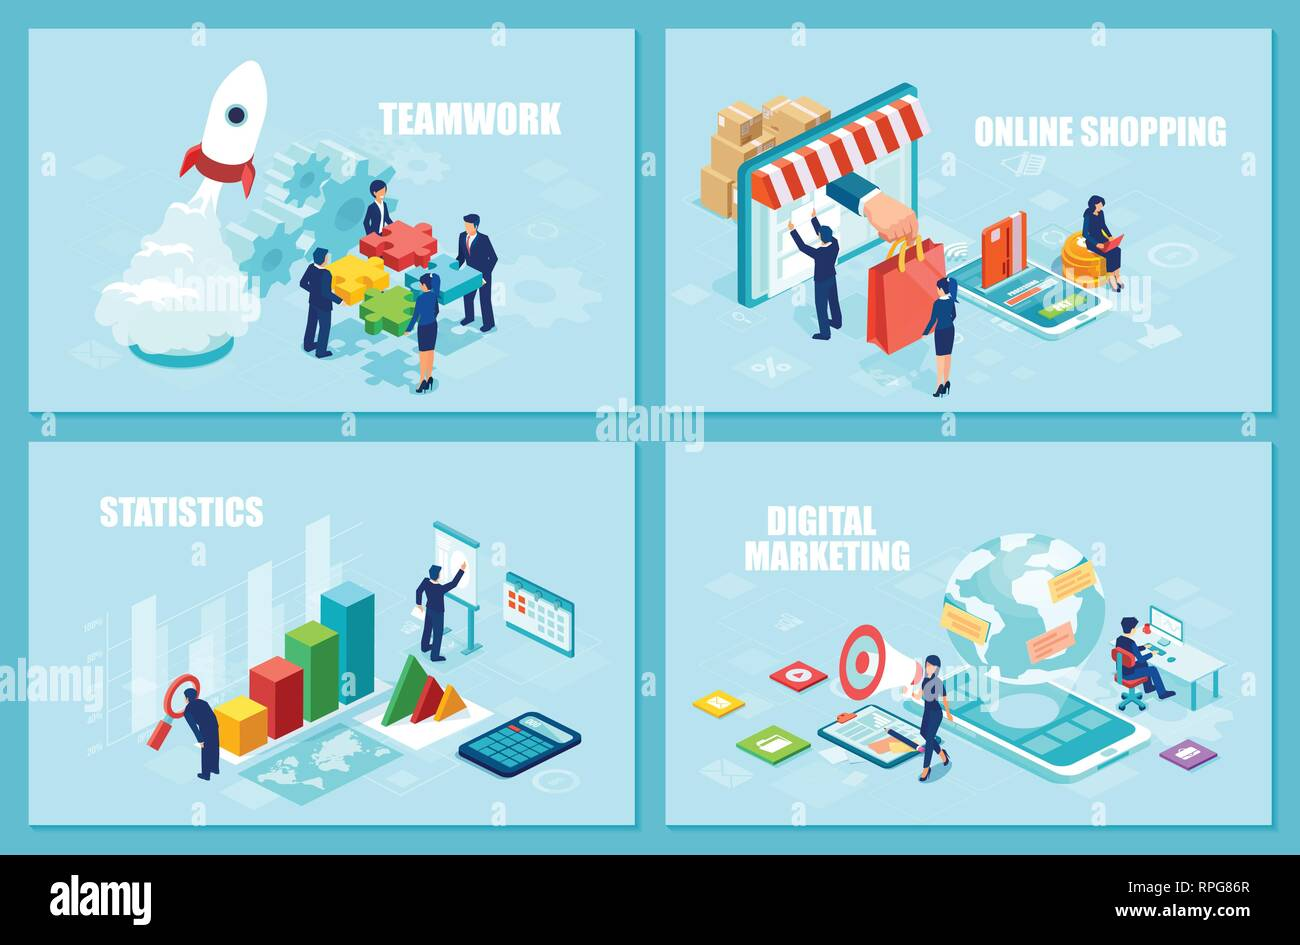 Internet business, teamwork and marketing concept. Set of isometric vector design templates for online shopping, startup strategy and financial analyt - Stock Image